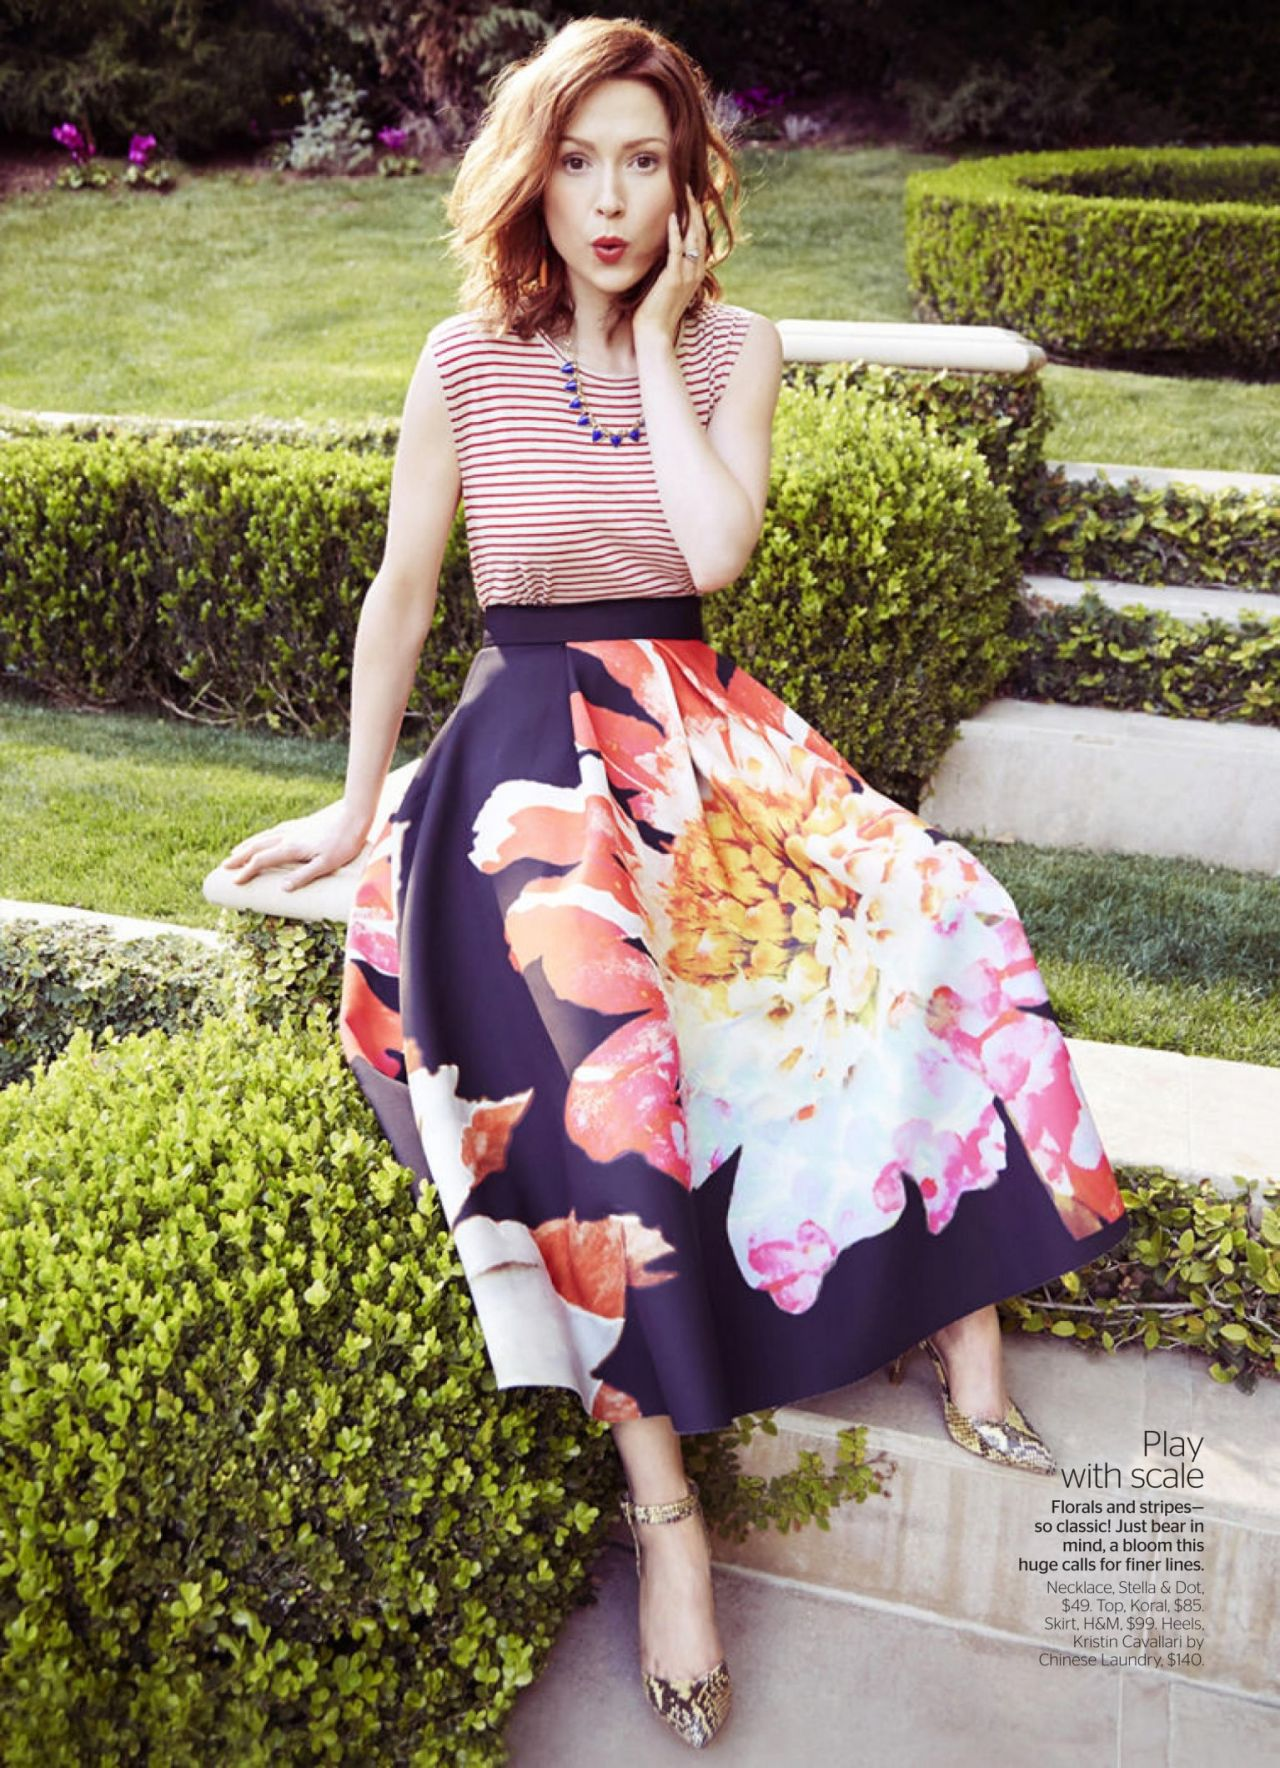 Ellie Kemper - Redbook Magazine April 2015 Issue